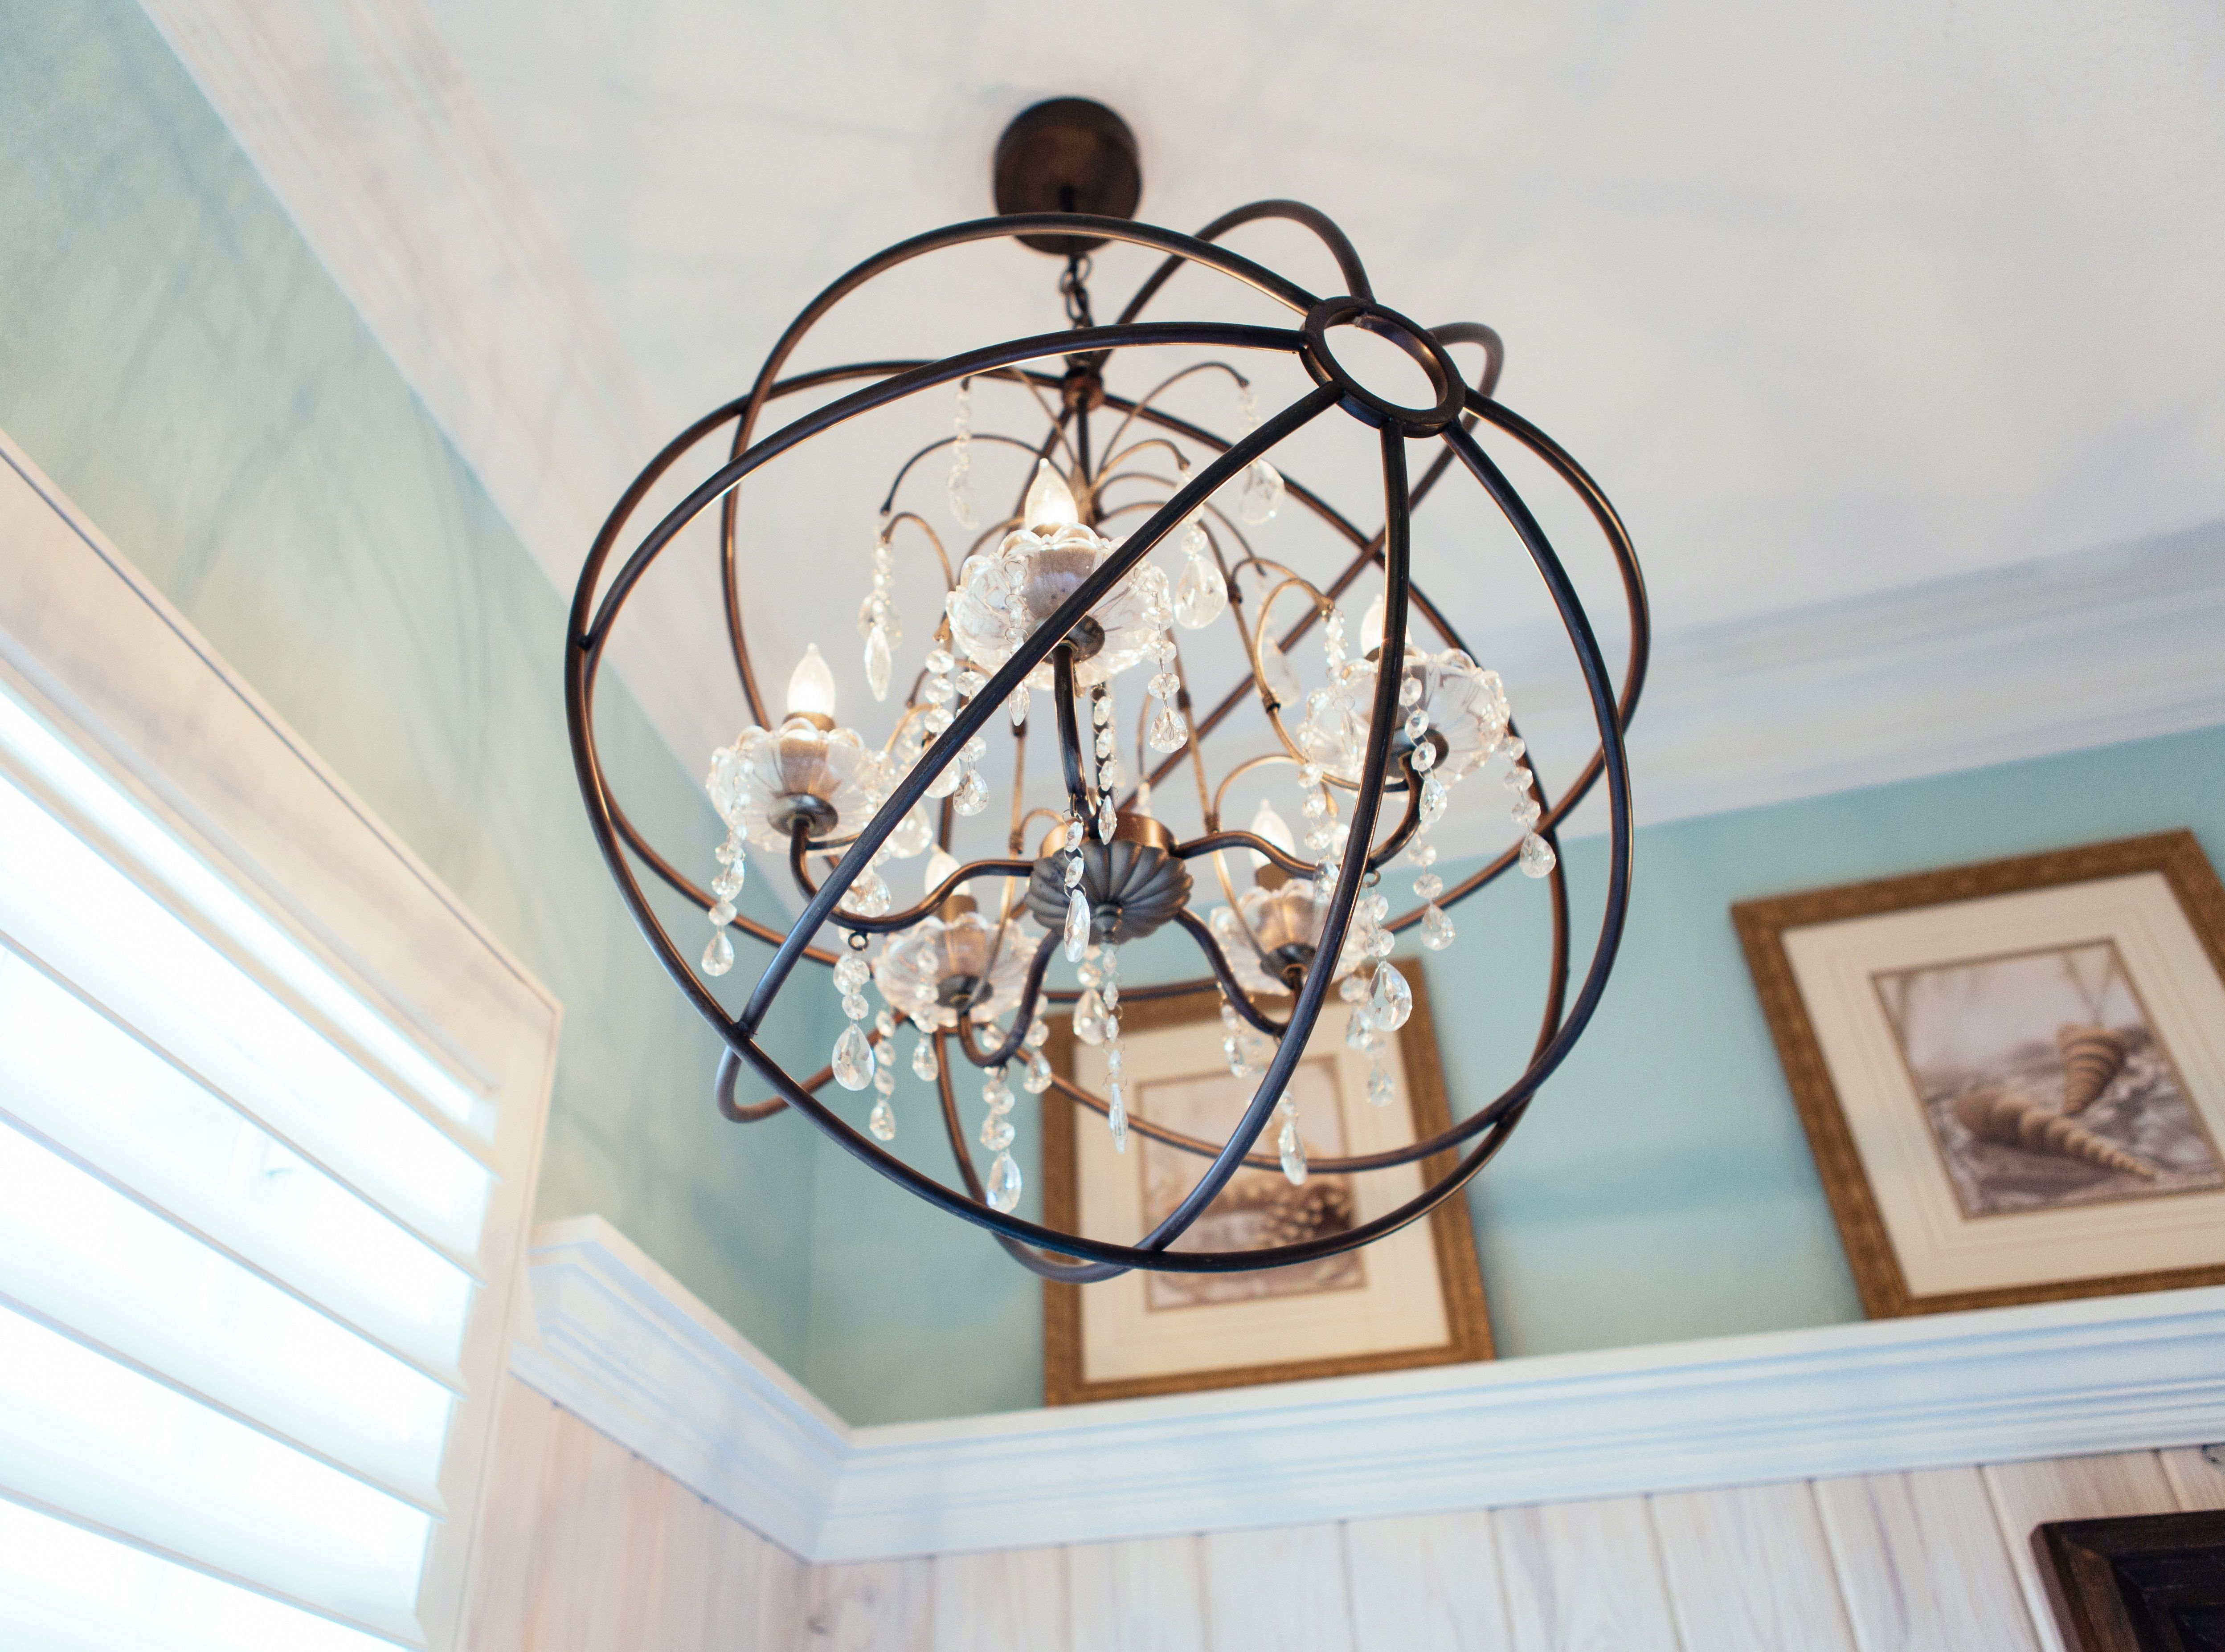 Custom Orlando Bathroom Remodeling Company Orb Light Fixture Orb - Custom bathroom light fixtures